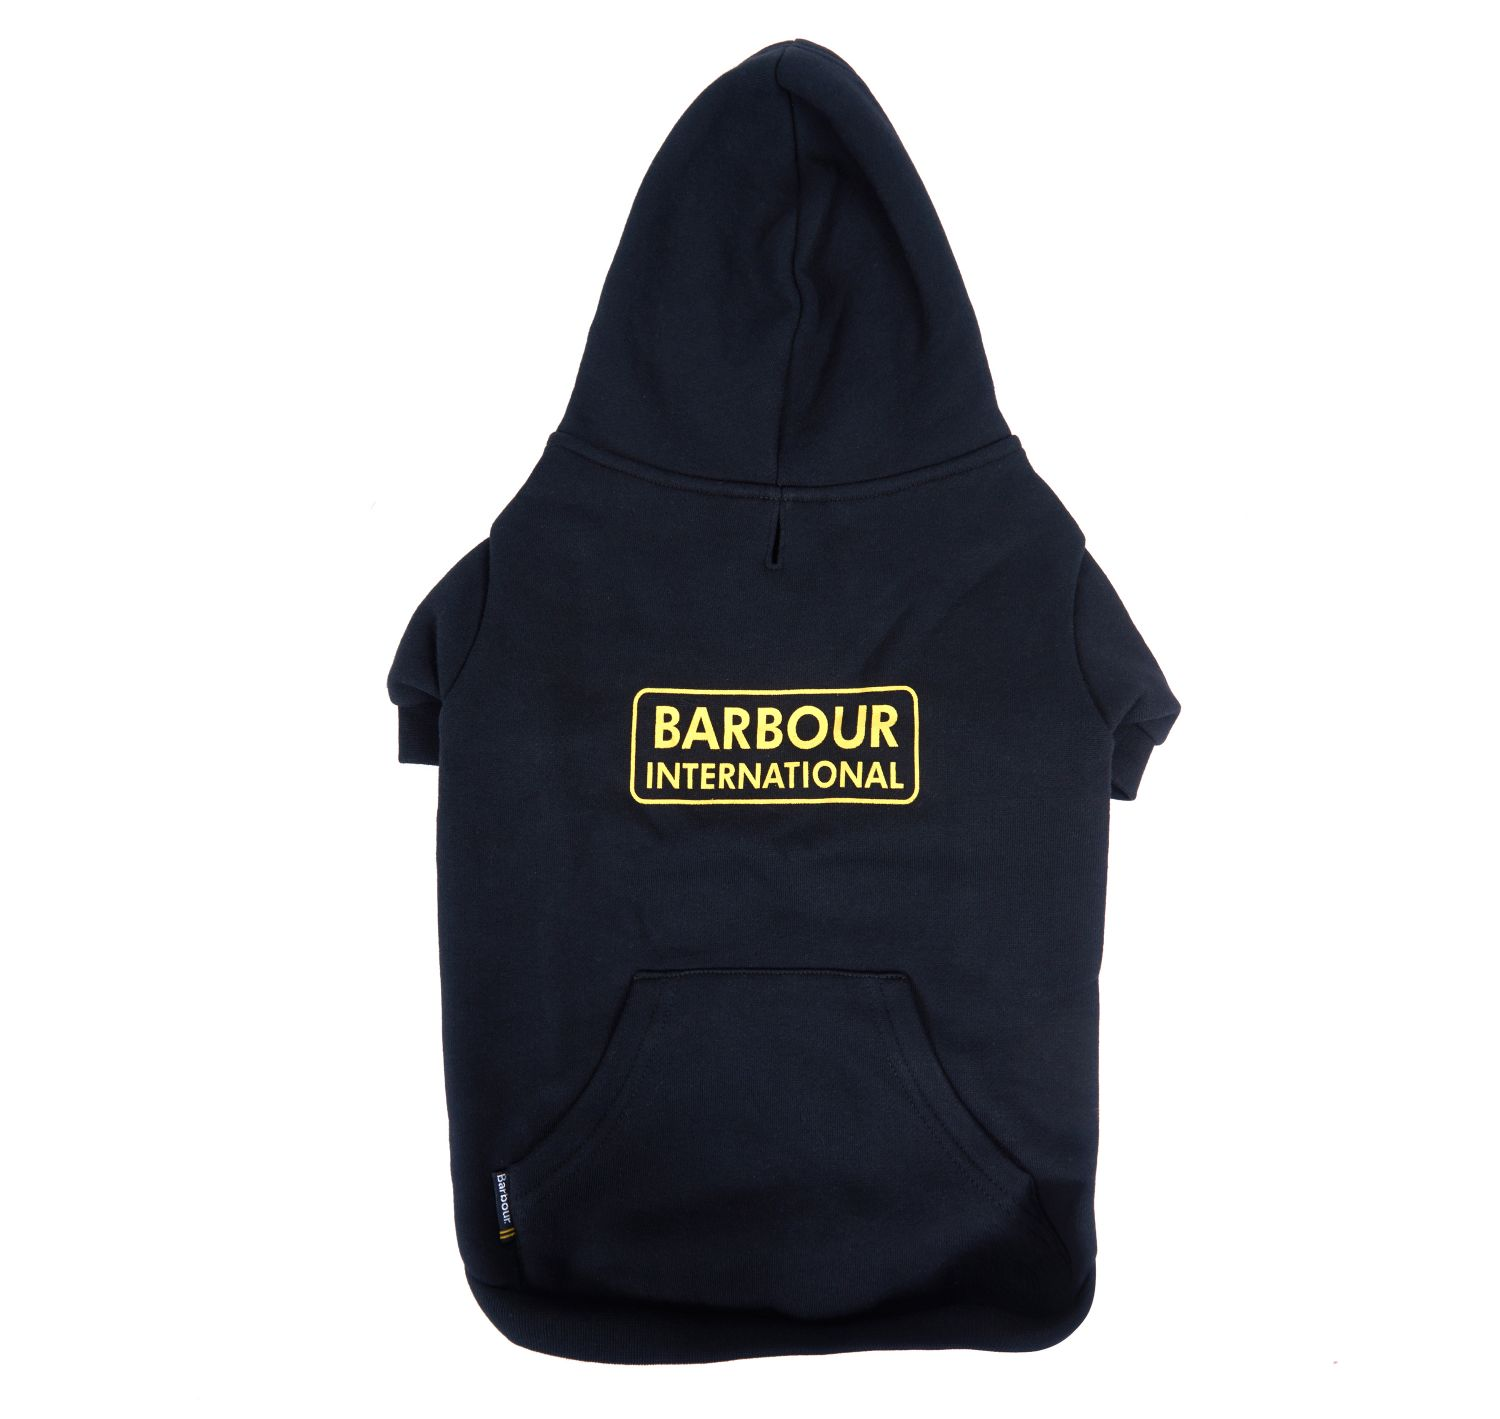 Barbour Intl Hooded Dog Coat Dogs Accesories